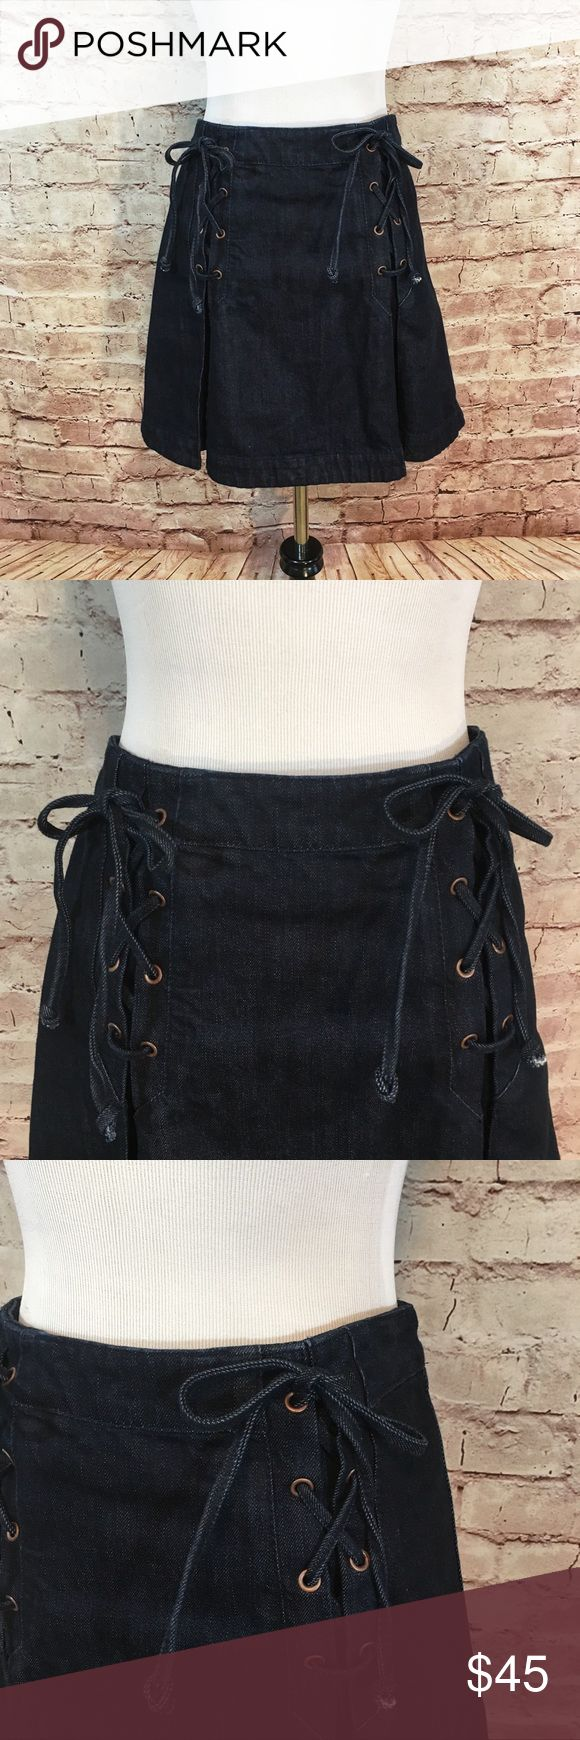 """Free People Denim Skater Skirt Dark wash denim jean skater skirt with front pleats and decorative ties with antique grommets from Free People.   The skirt has a back zipper closure. 100% Cotton. Size 6. Waist 28"""". Length 16.5"""". Like new condition. No flaws or signs of wear. Free People Skirts Circle & Skater"""